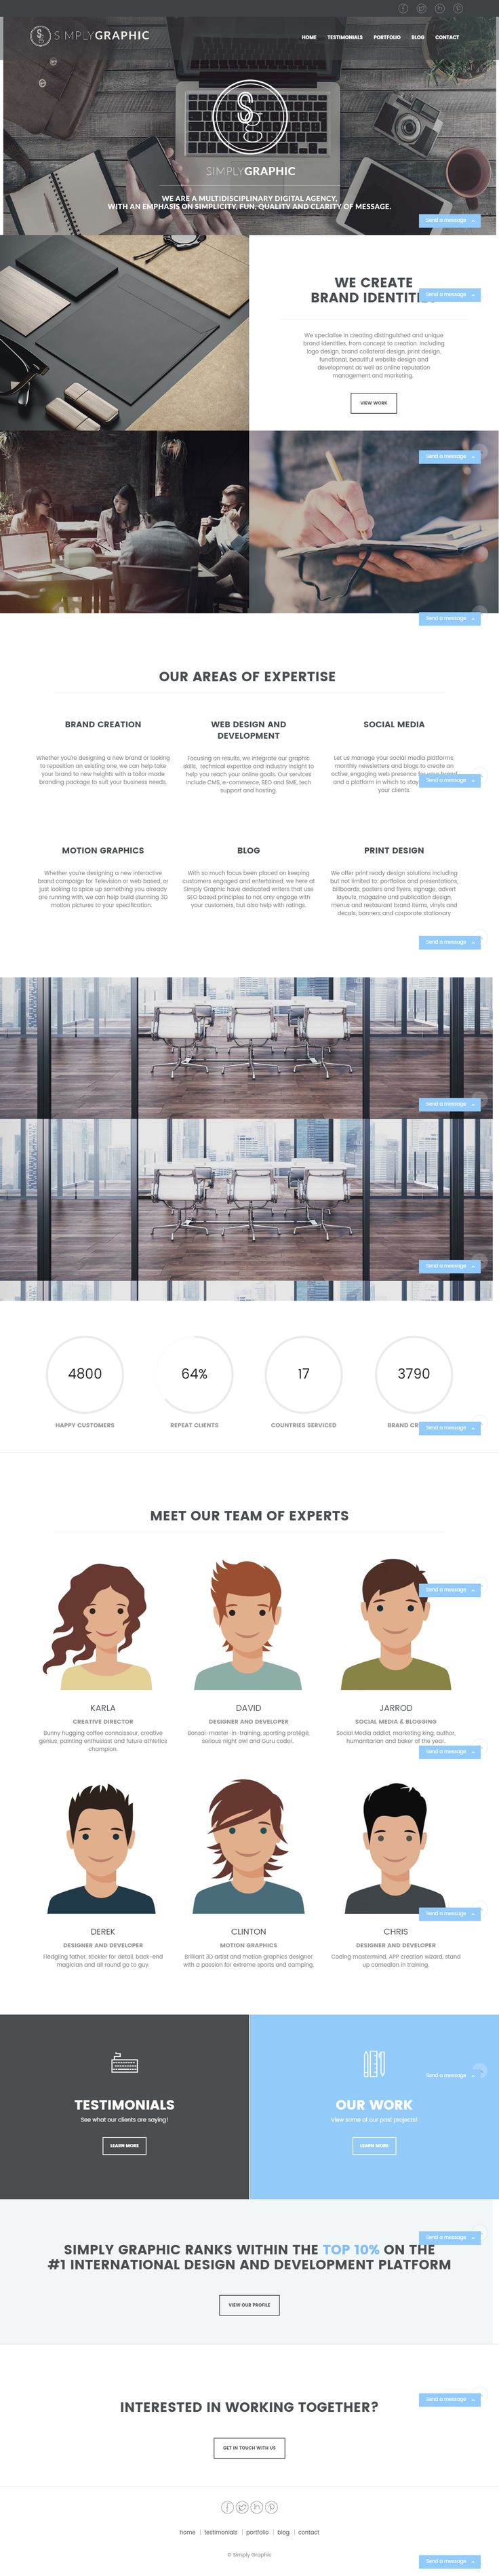 simplygraphic.co.za, powered by Shopkeeper eCommerce WordPress theme https://themeforest.net/item/shopkeeper-ecommerce-wp-theme-for-woocommerce/9553045?utm_source=pinterest.com&utm_medium=social&utm_content=simply-graphic&utm_campaign=showcase #showcase #wordpress #design  #UX